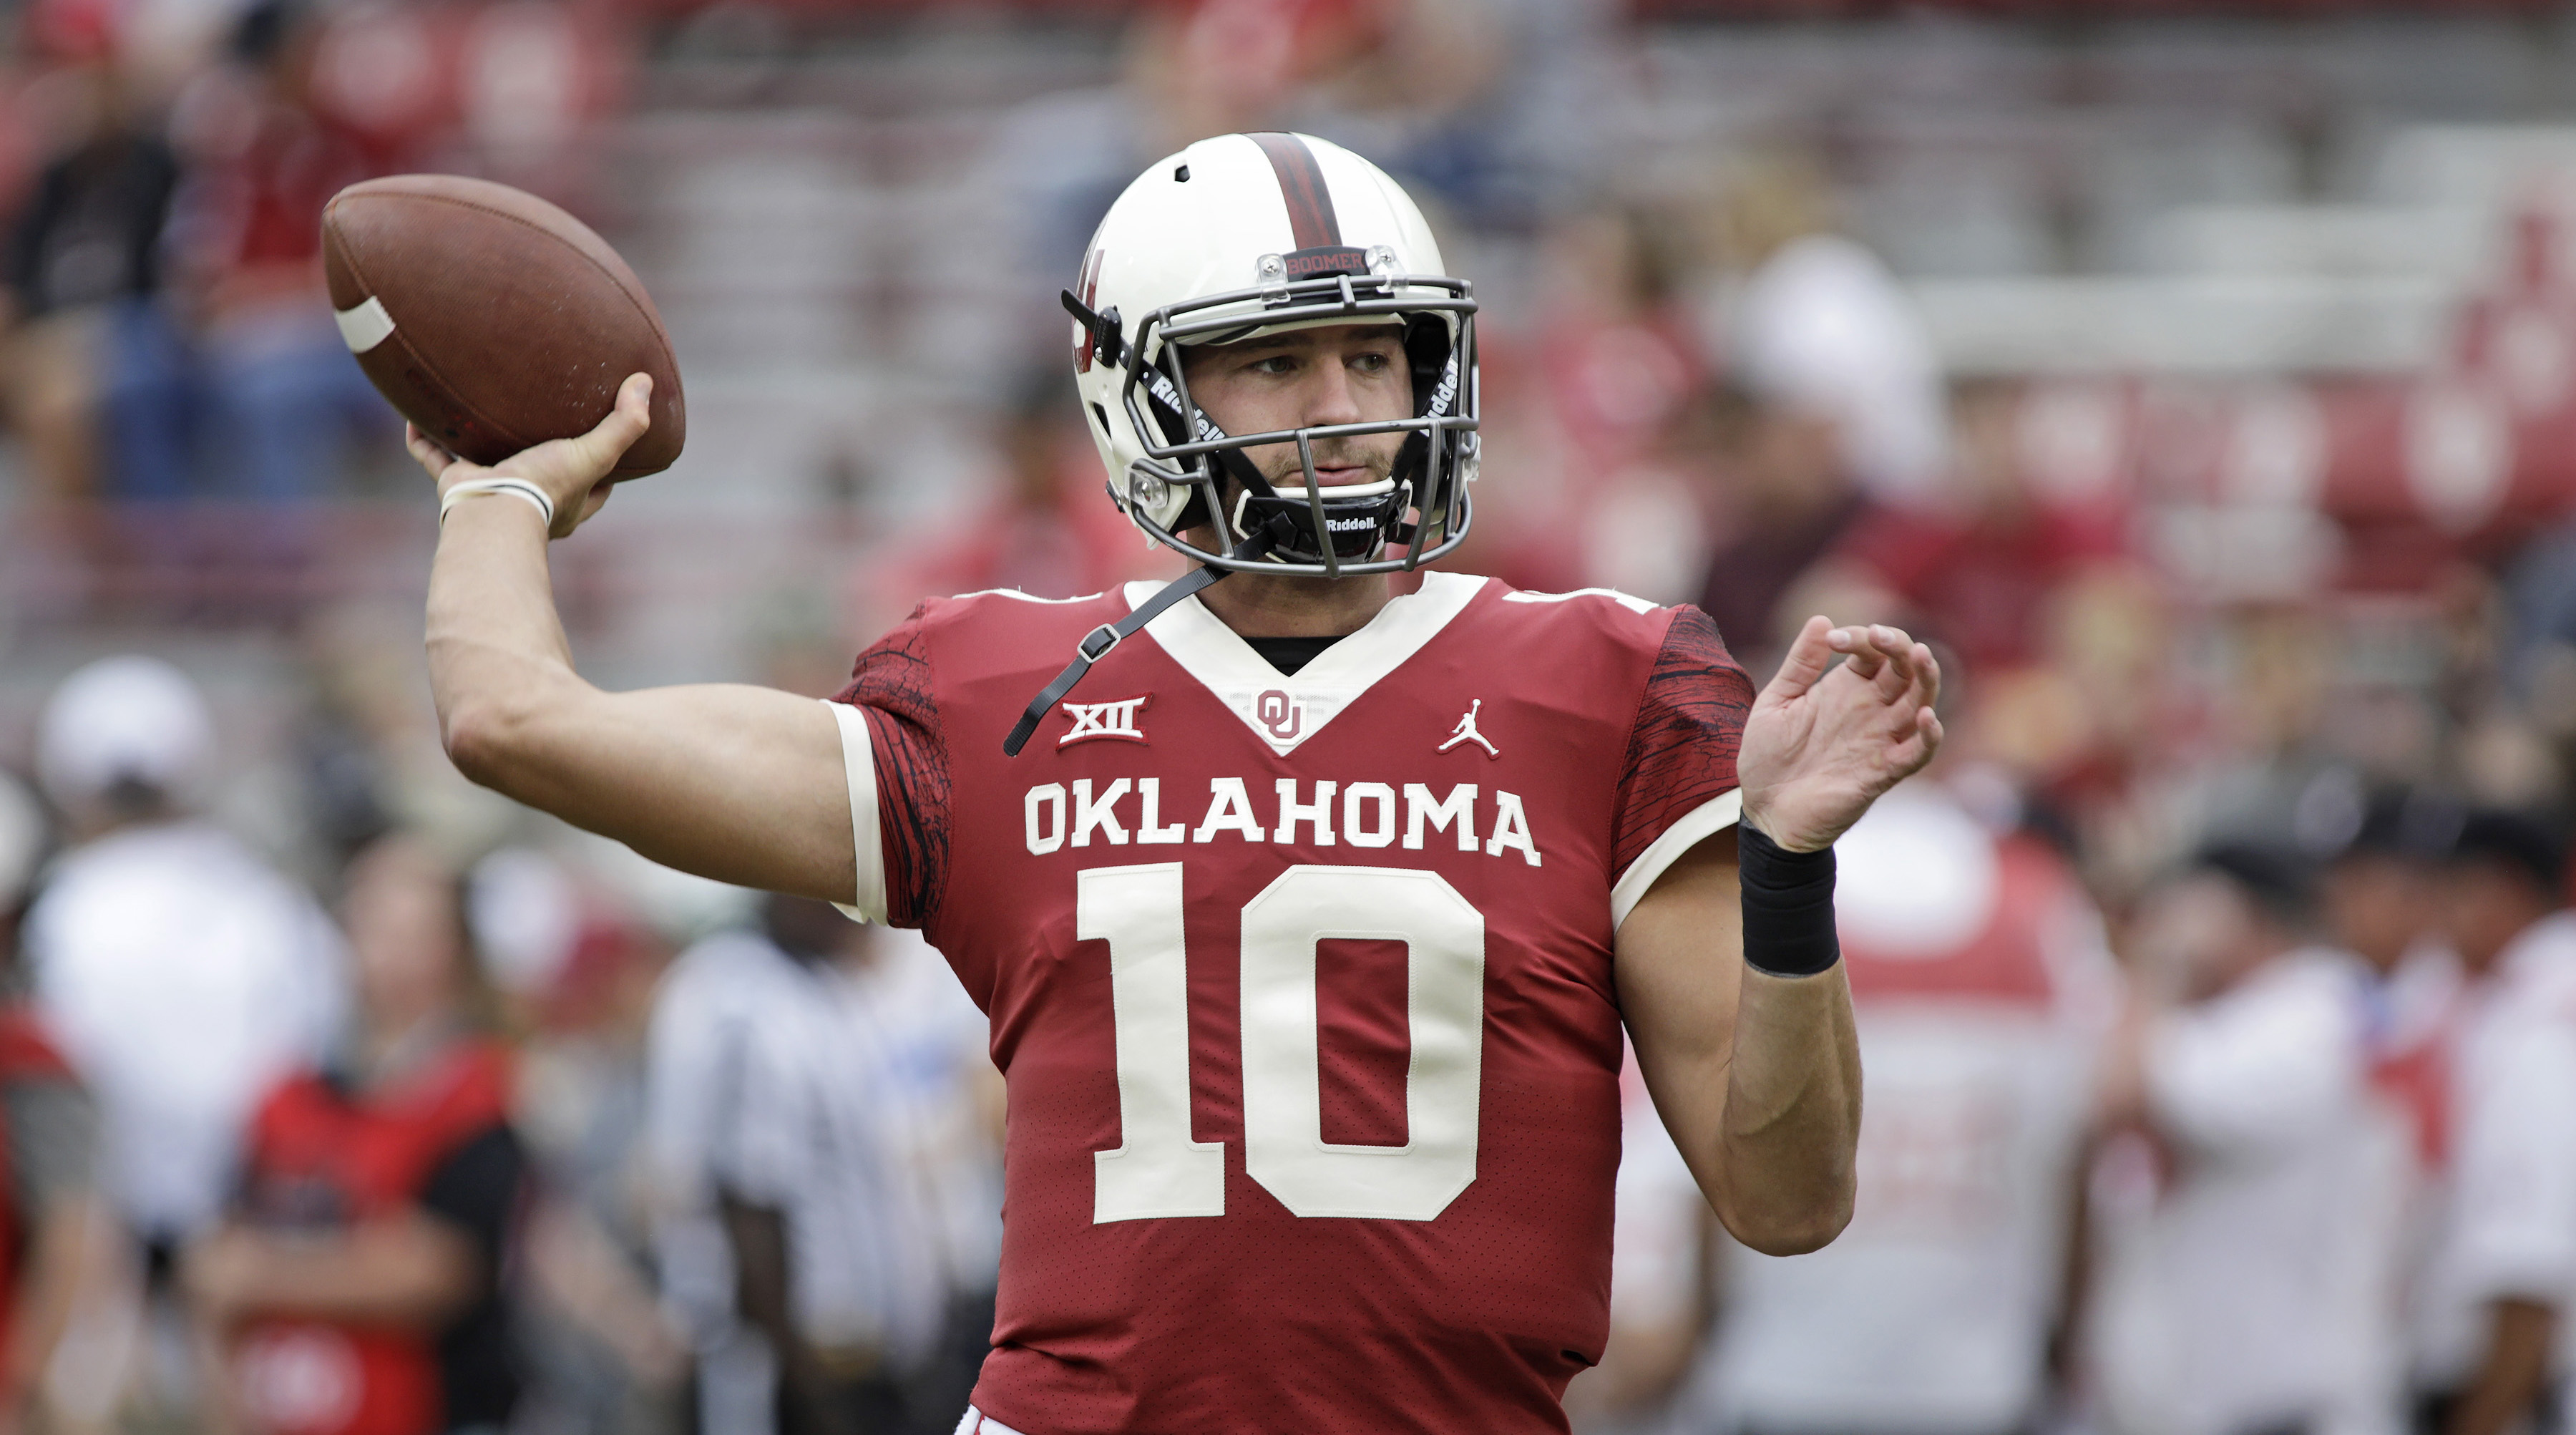 Report: Oklahoma Backup QB Austin Kendall Enters NCAA Transfer Portal